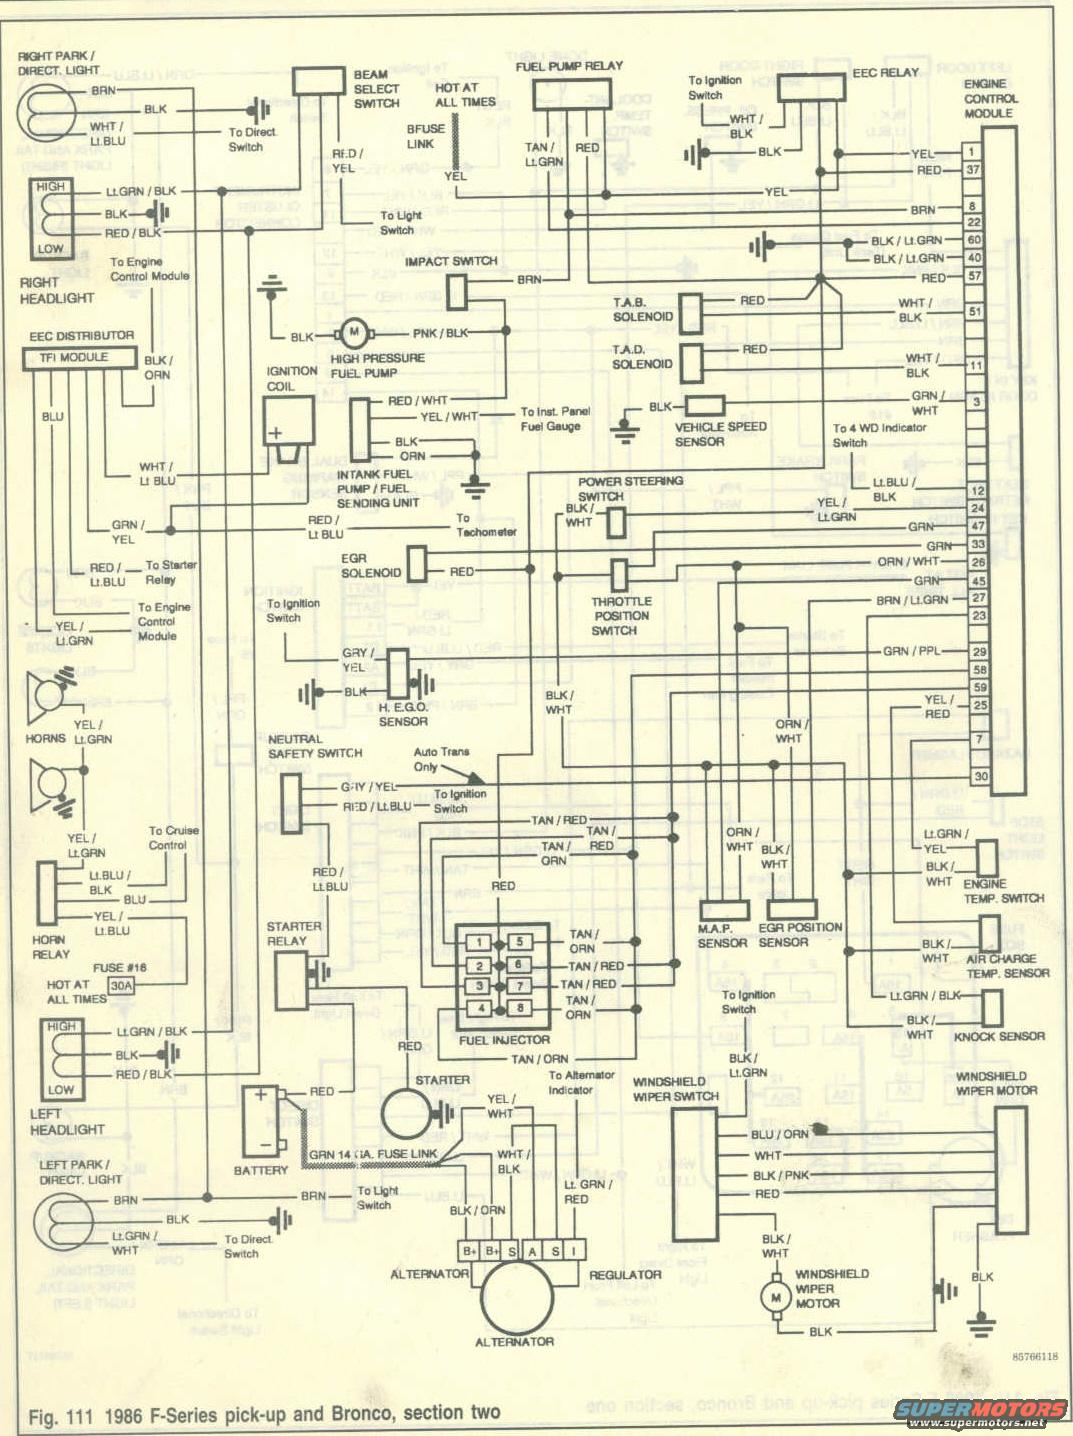 ford transit alternator wiring diagram suzuki bandit 1986 bronco diagrams picture | supermotors.net